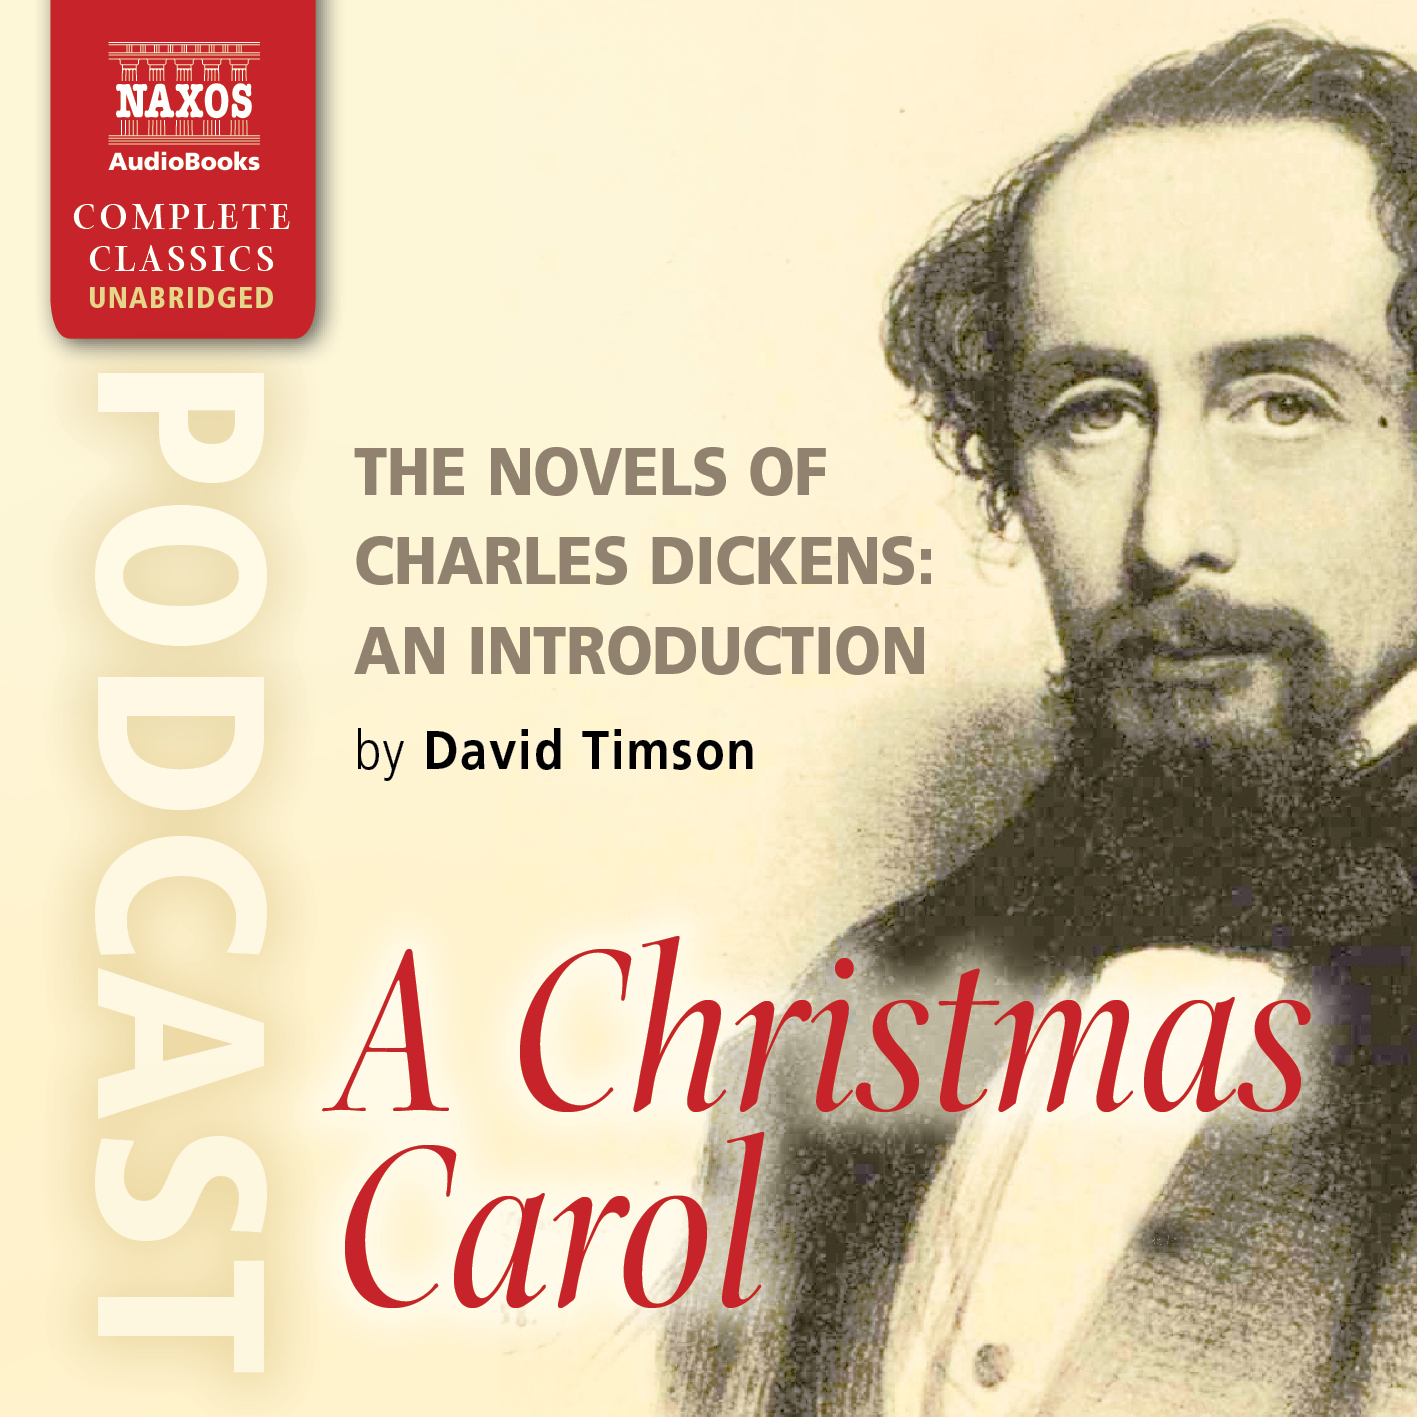 https://naxosaudiobooks.com/wp-content/uploads/2019/08/NA0383_A_Christmas_Carol_Podcast.jpg